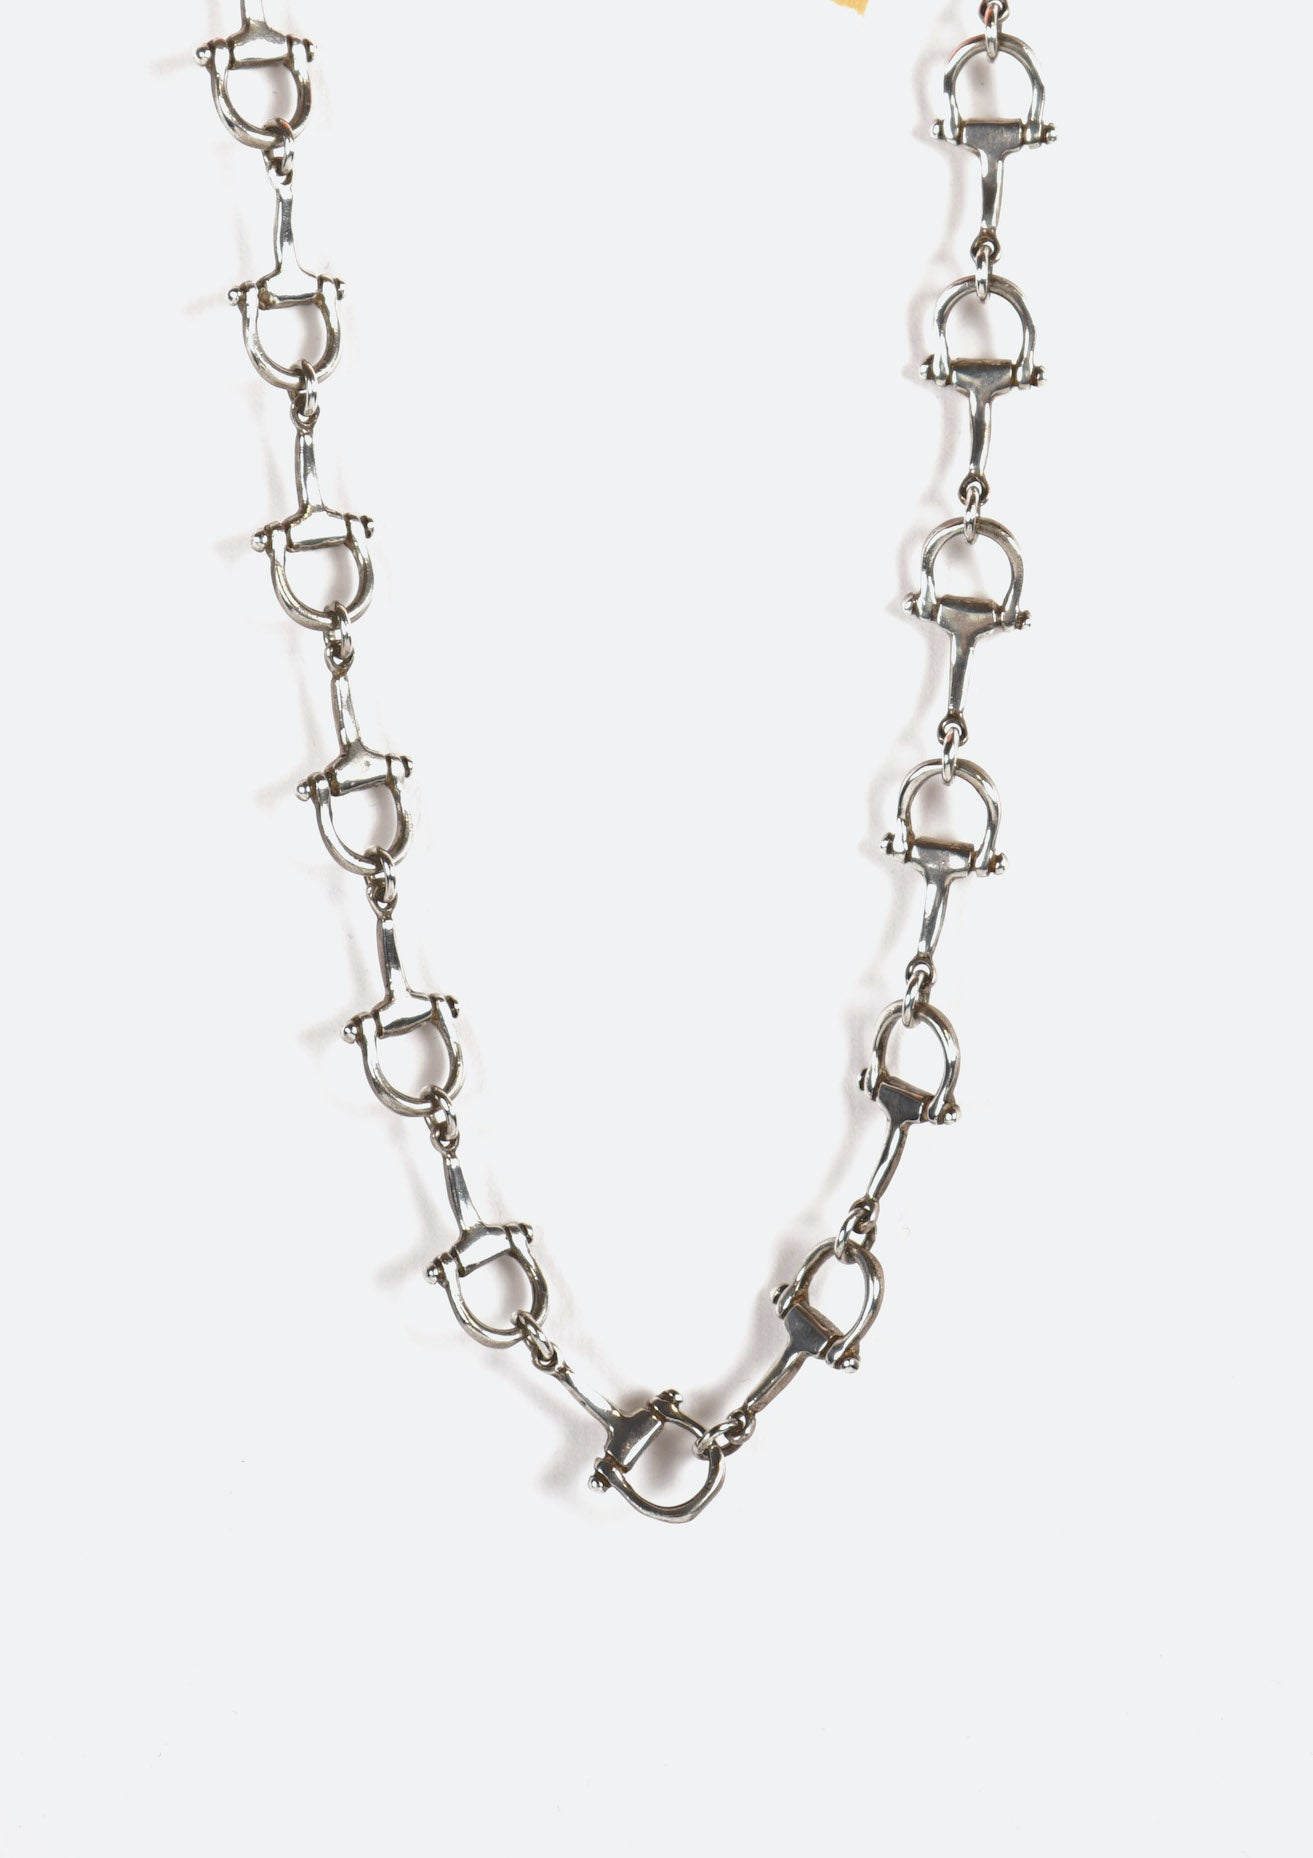 D shape Shackle Necklace